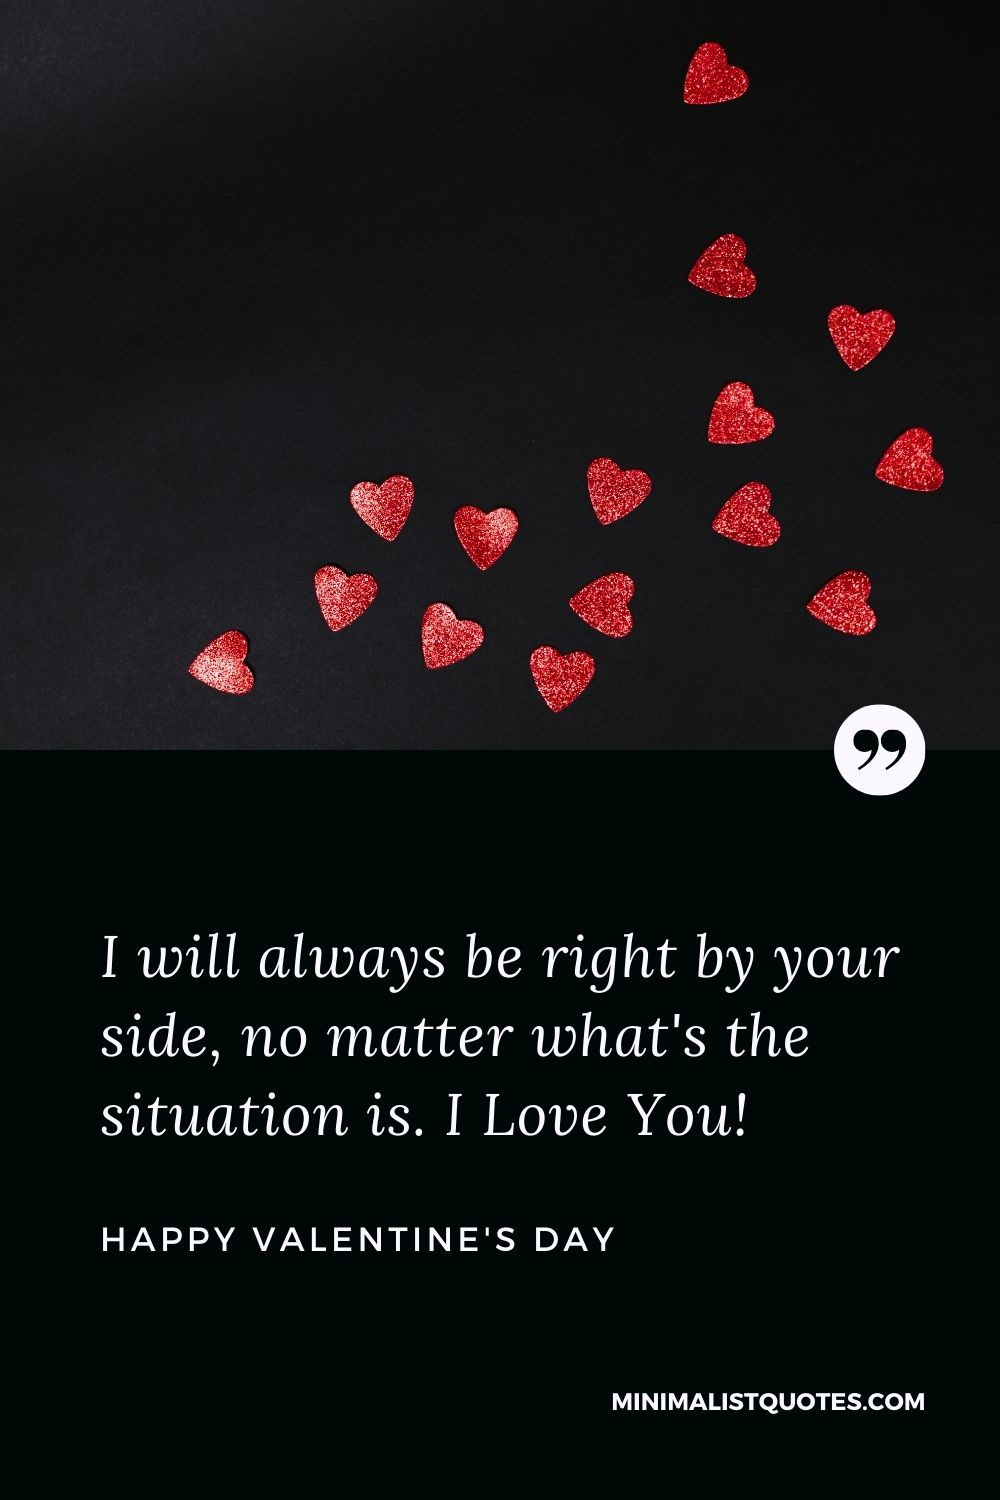 Valentine's day wish, message & quote with HD image: I will always be right by your side, no matter what's the situationis. I Love You! Happy Valentine's Day!